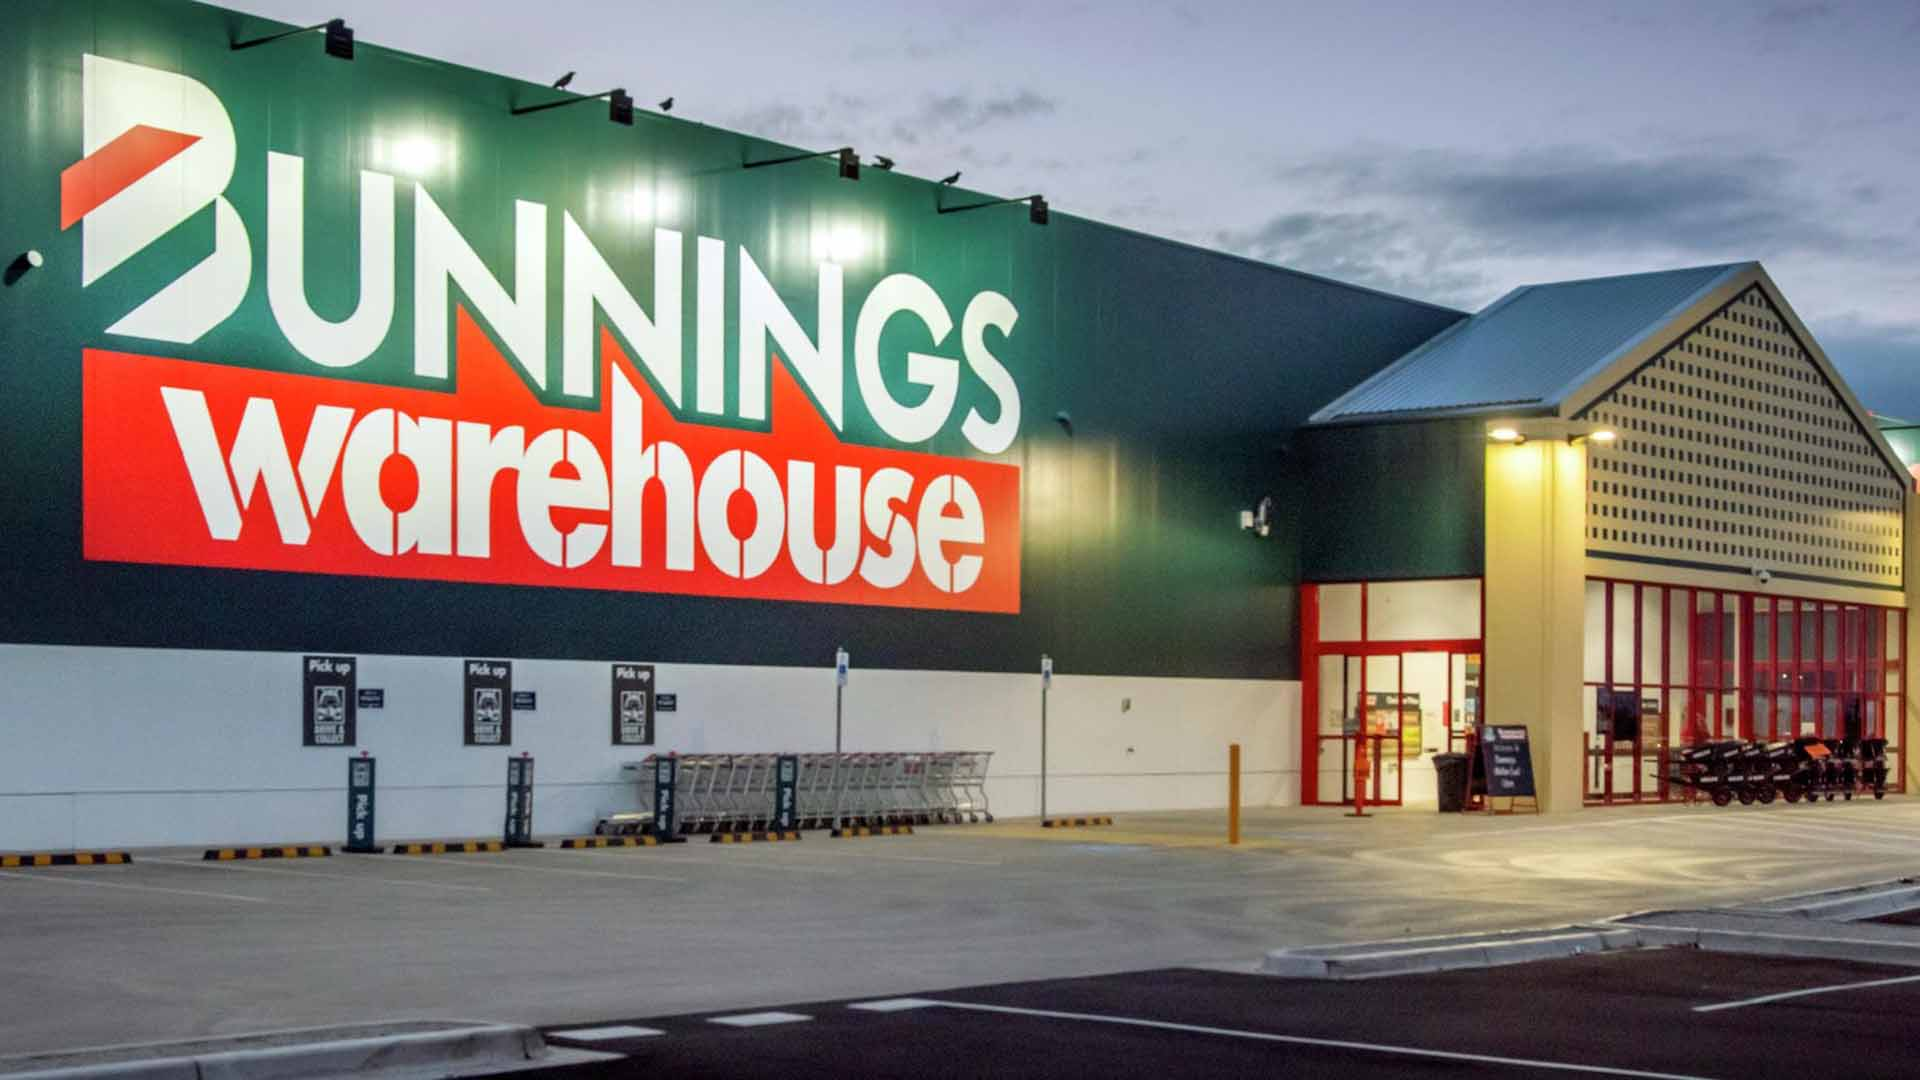 Bunnings Has Shut Its Sydney Stores and Moved to Drive-and-Collect Orders for the Rest of Lockdown